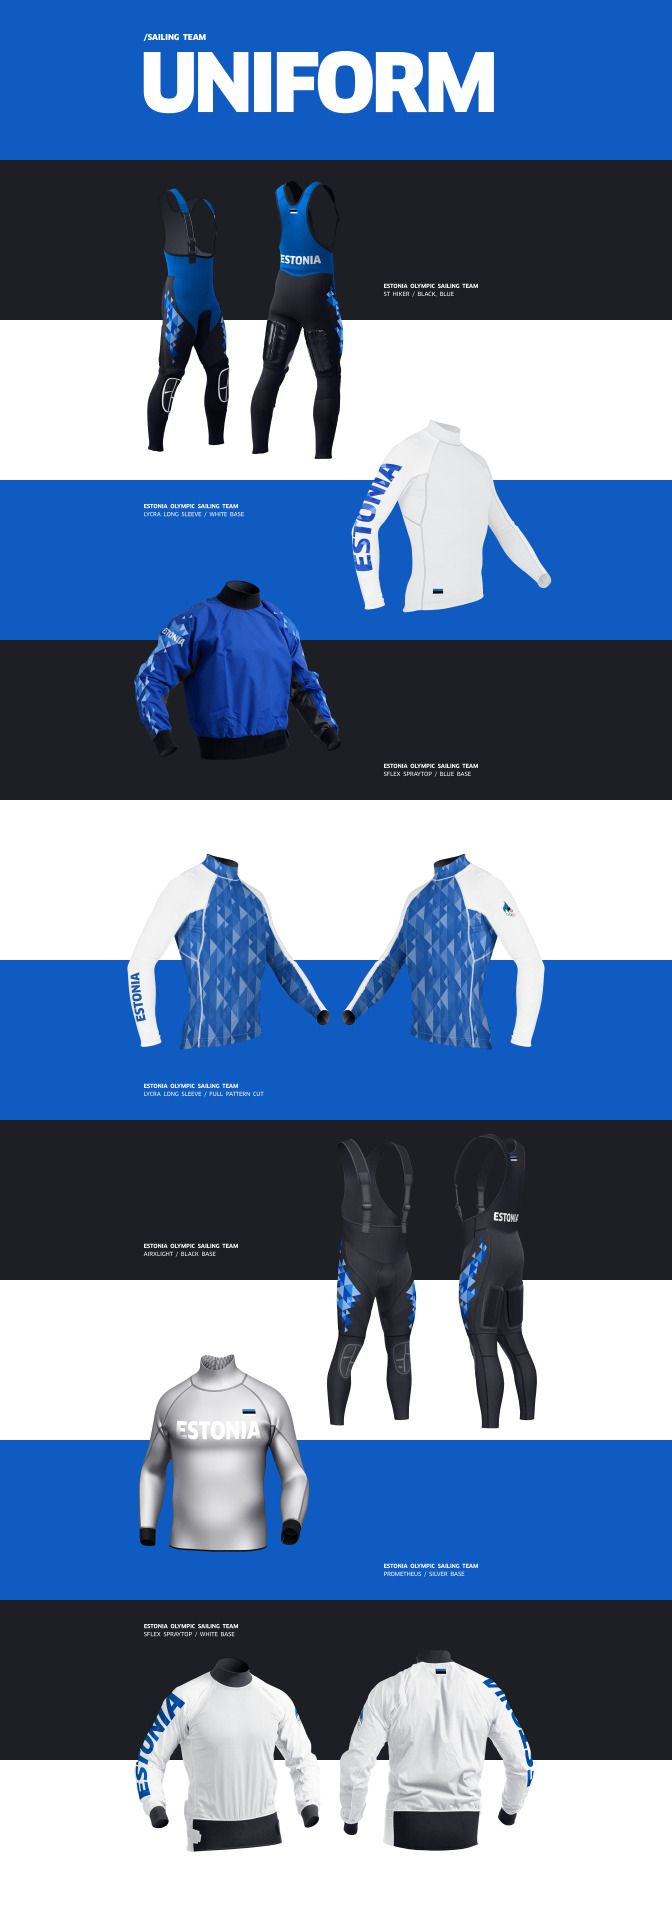 Estonia's flag and Nordic folk heritage was the inspiration for the new identity of Estonia's sailing costumes for the 2016 Rio Summer Olympics. See full case study: http://work.antonandirene.com/estoniaolympic